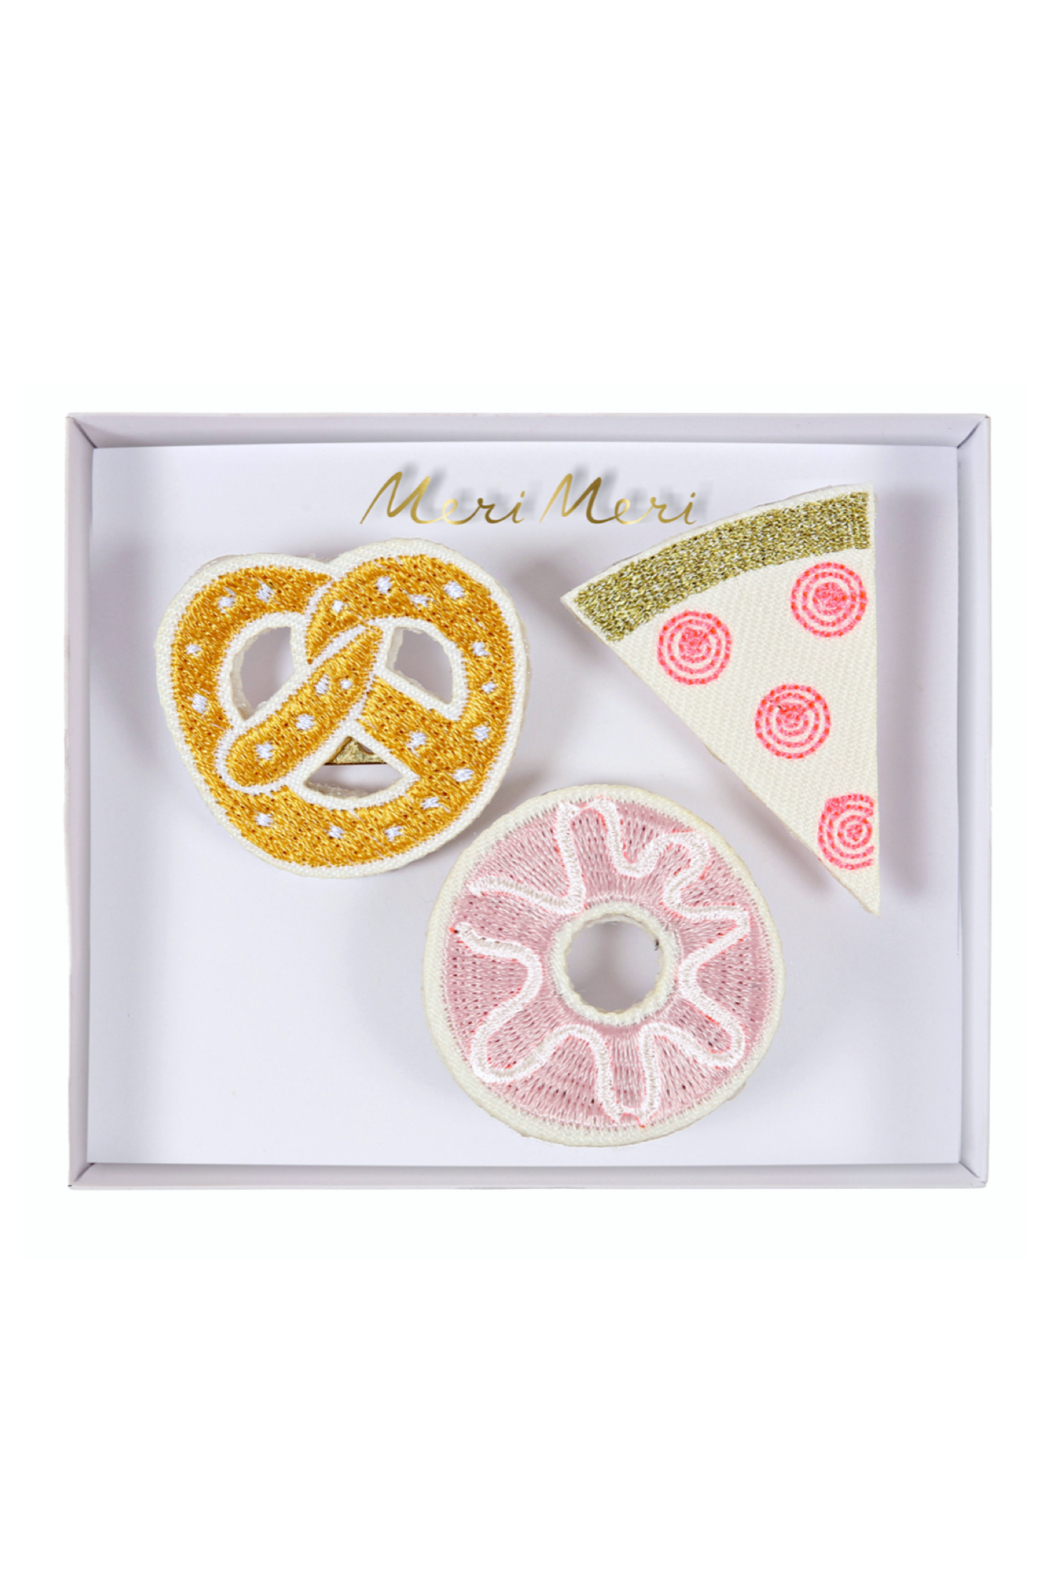 Meri Meri Embroidered Snack Brooches - Main Image